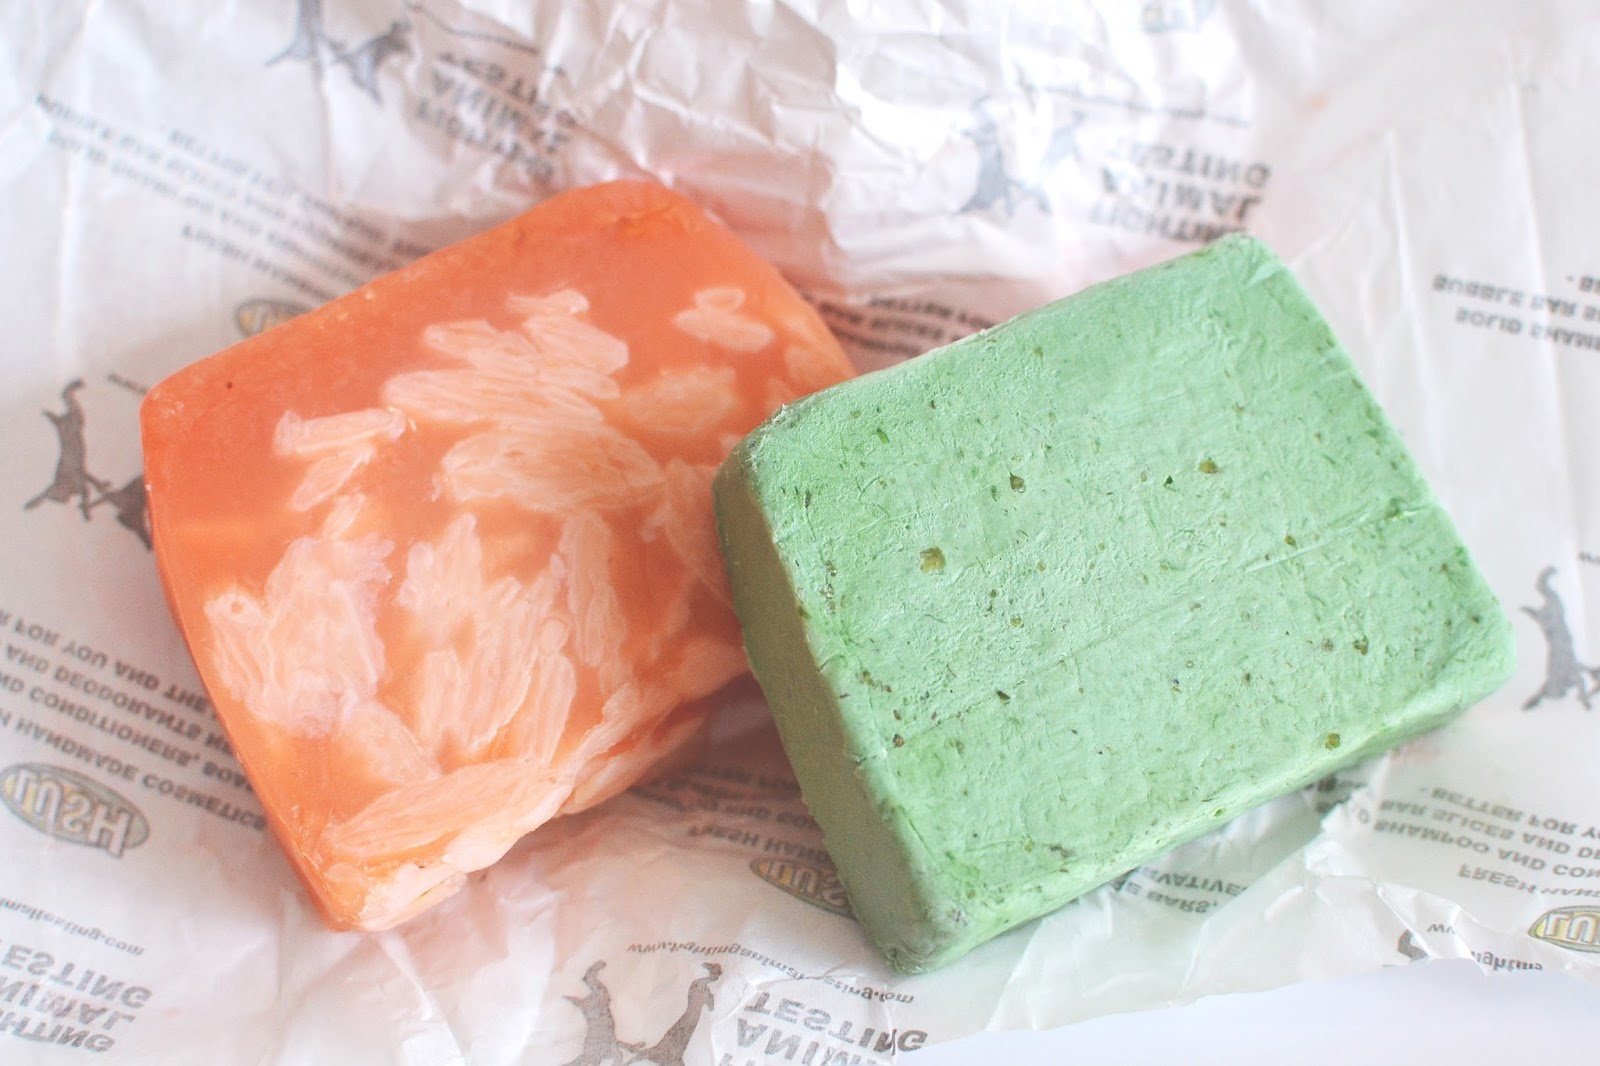 soap from lush review